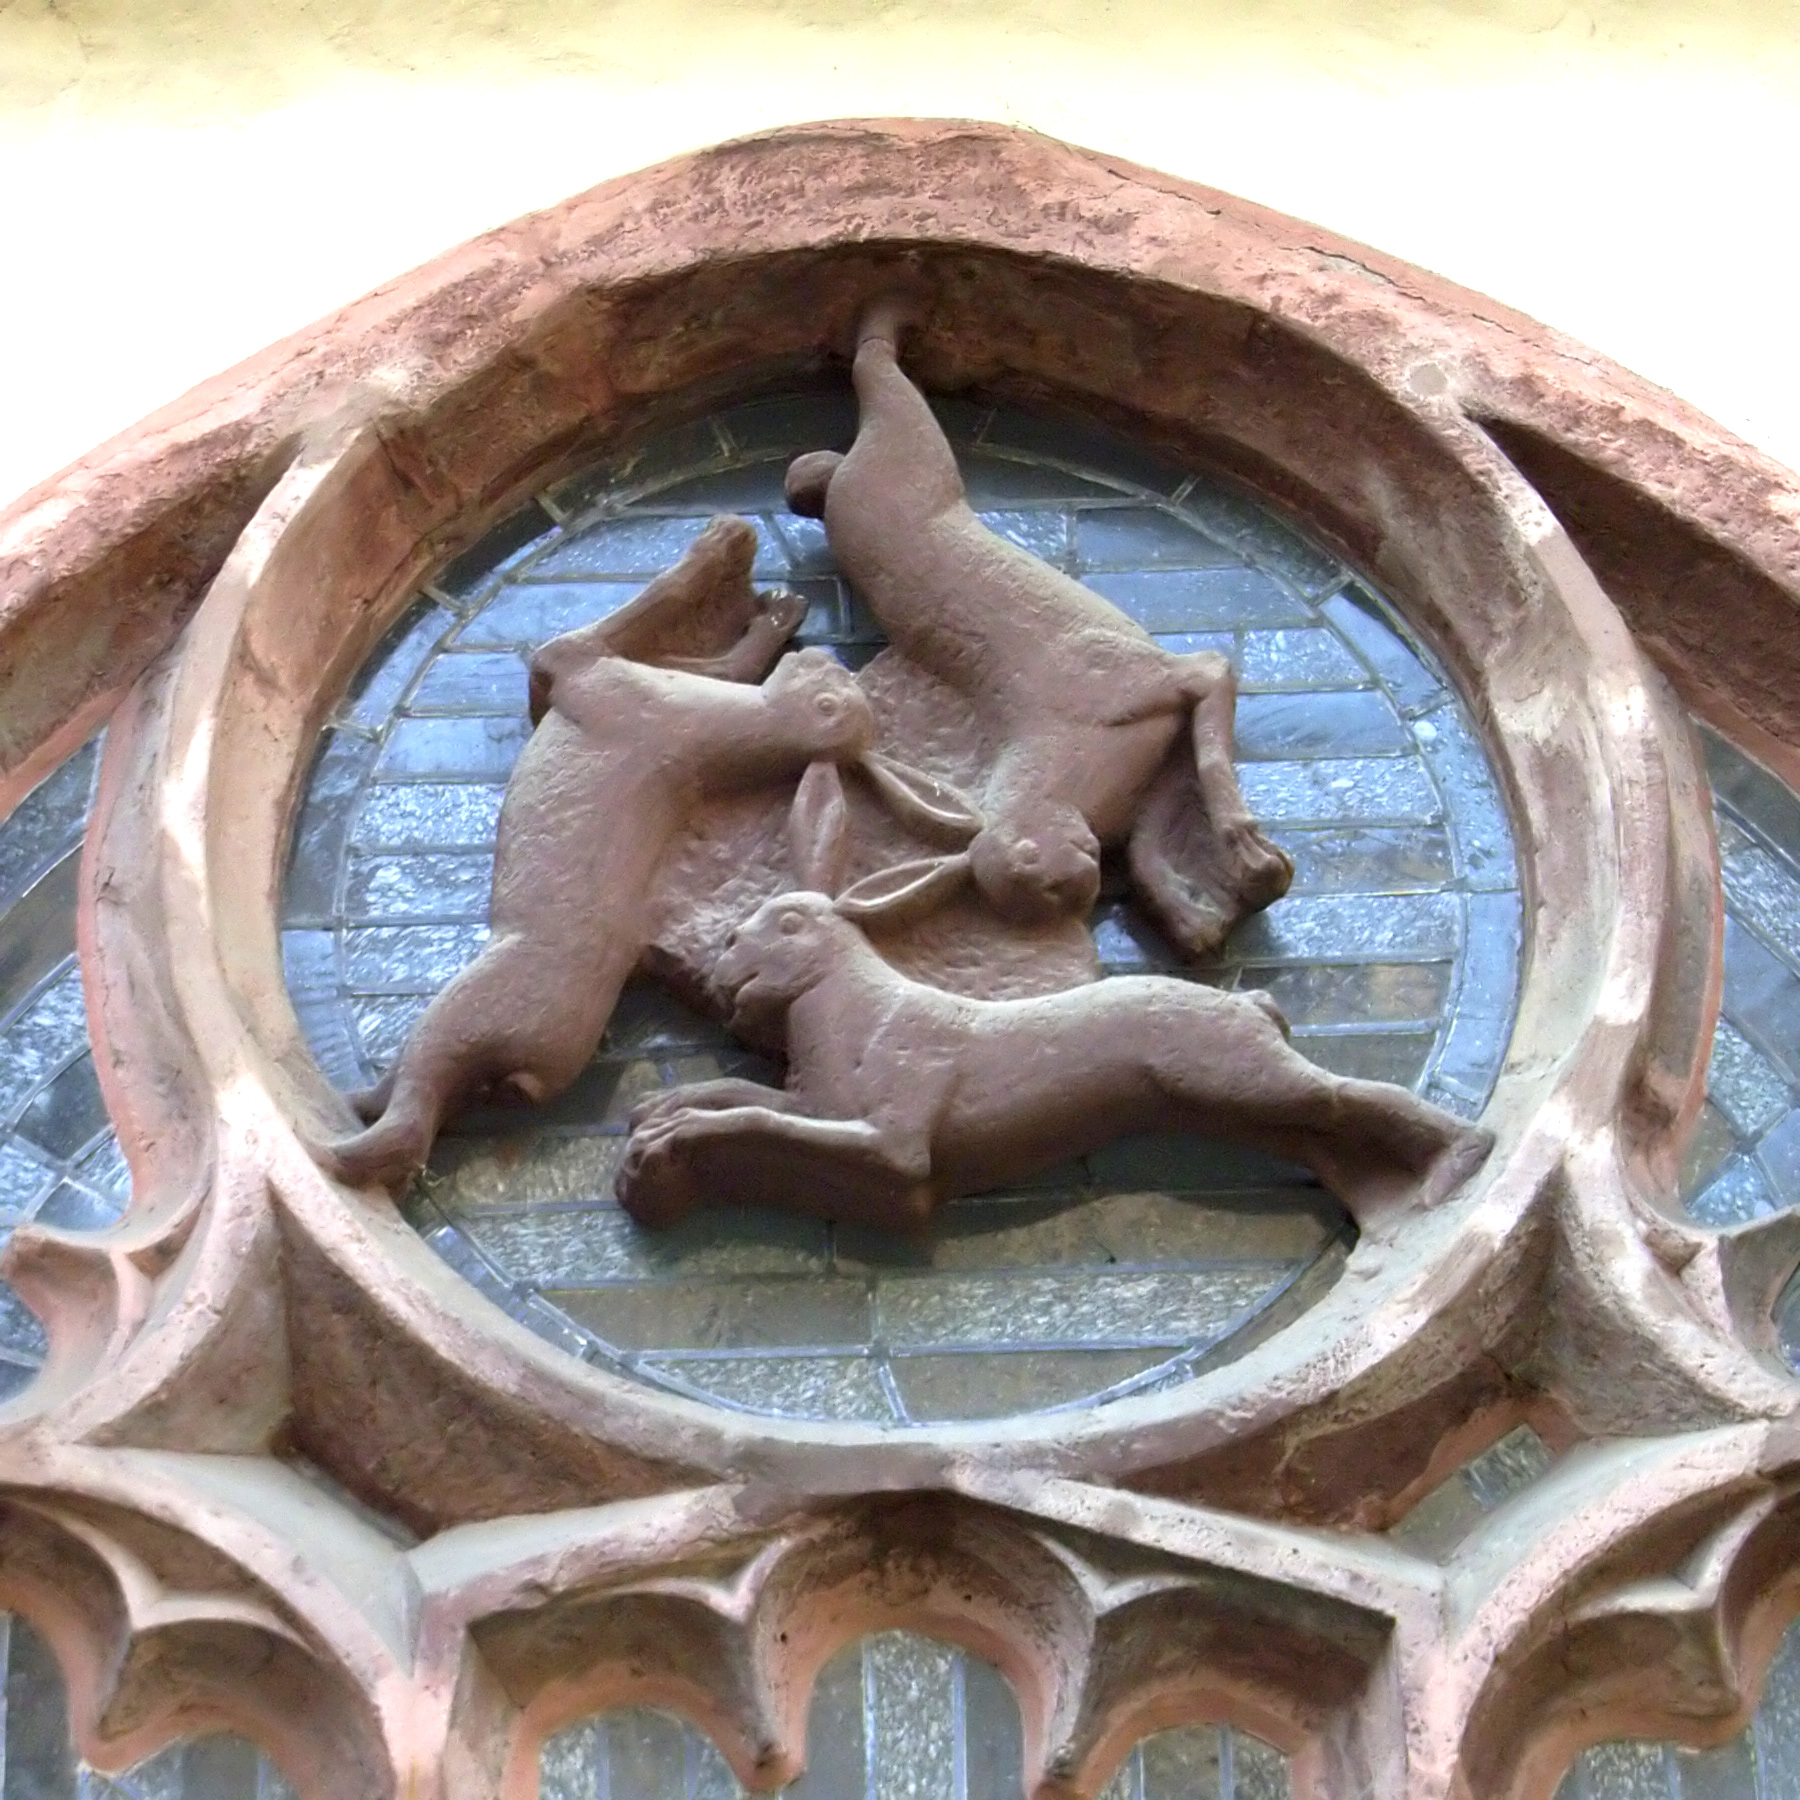 Discovering The Three Hares in Sedbergh